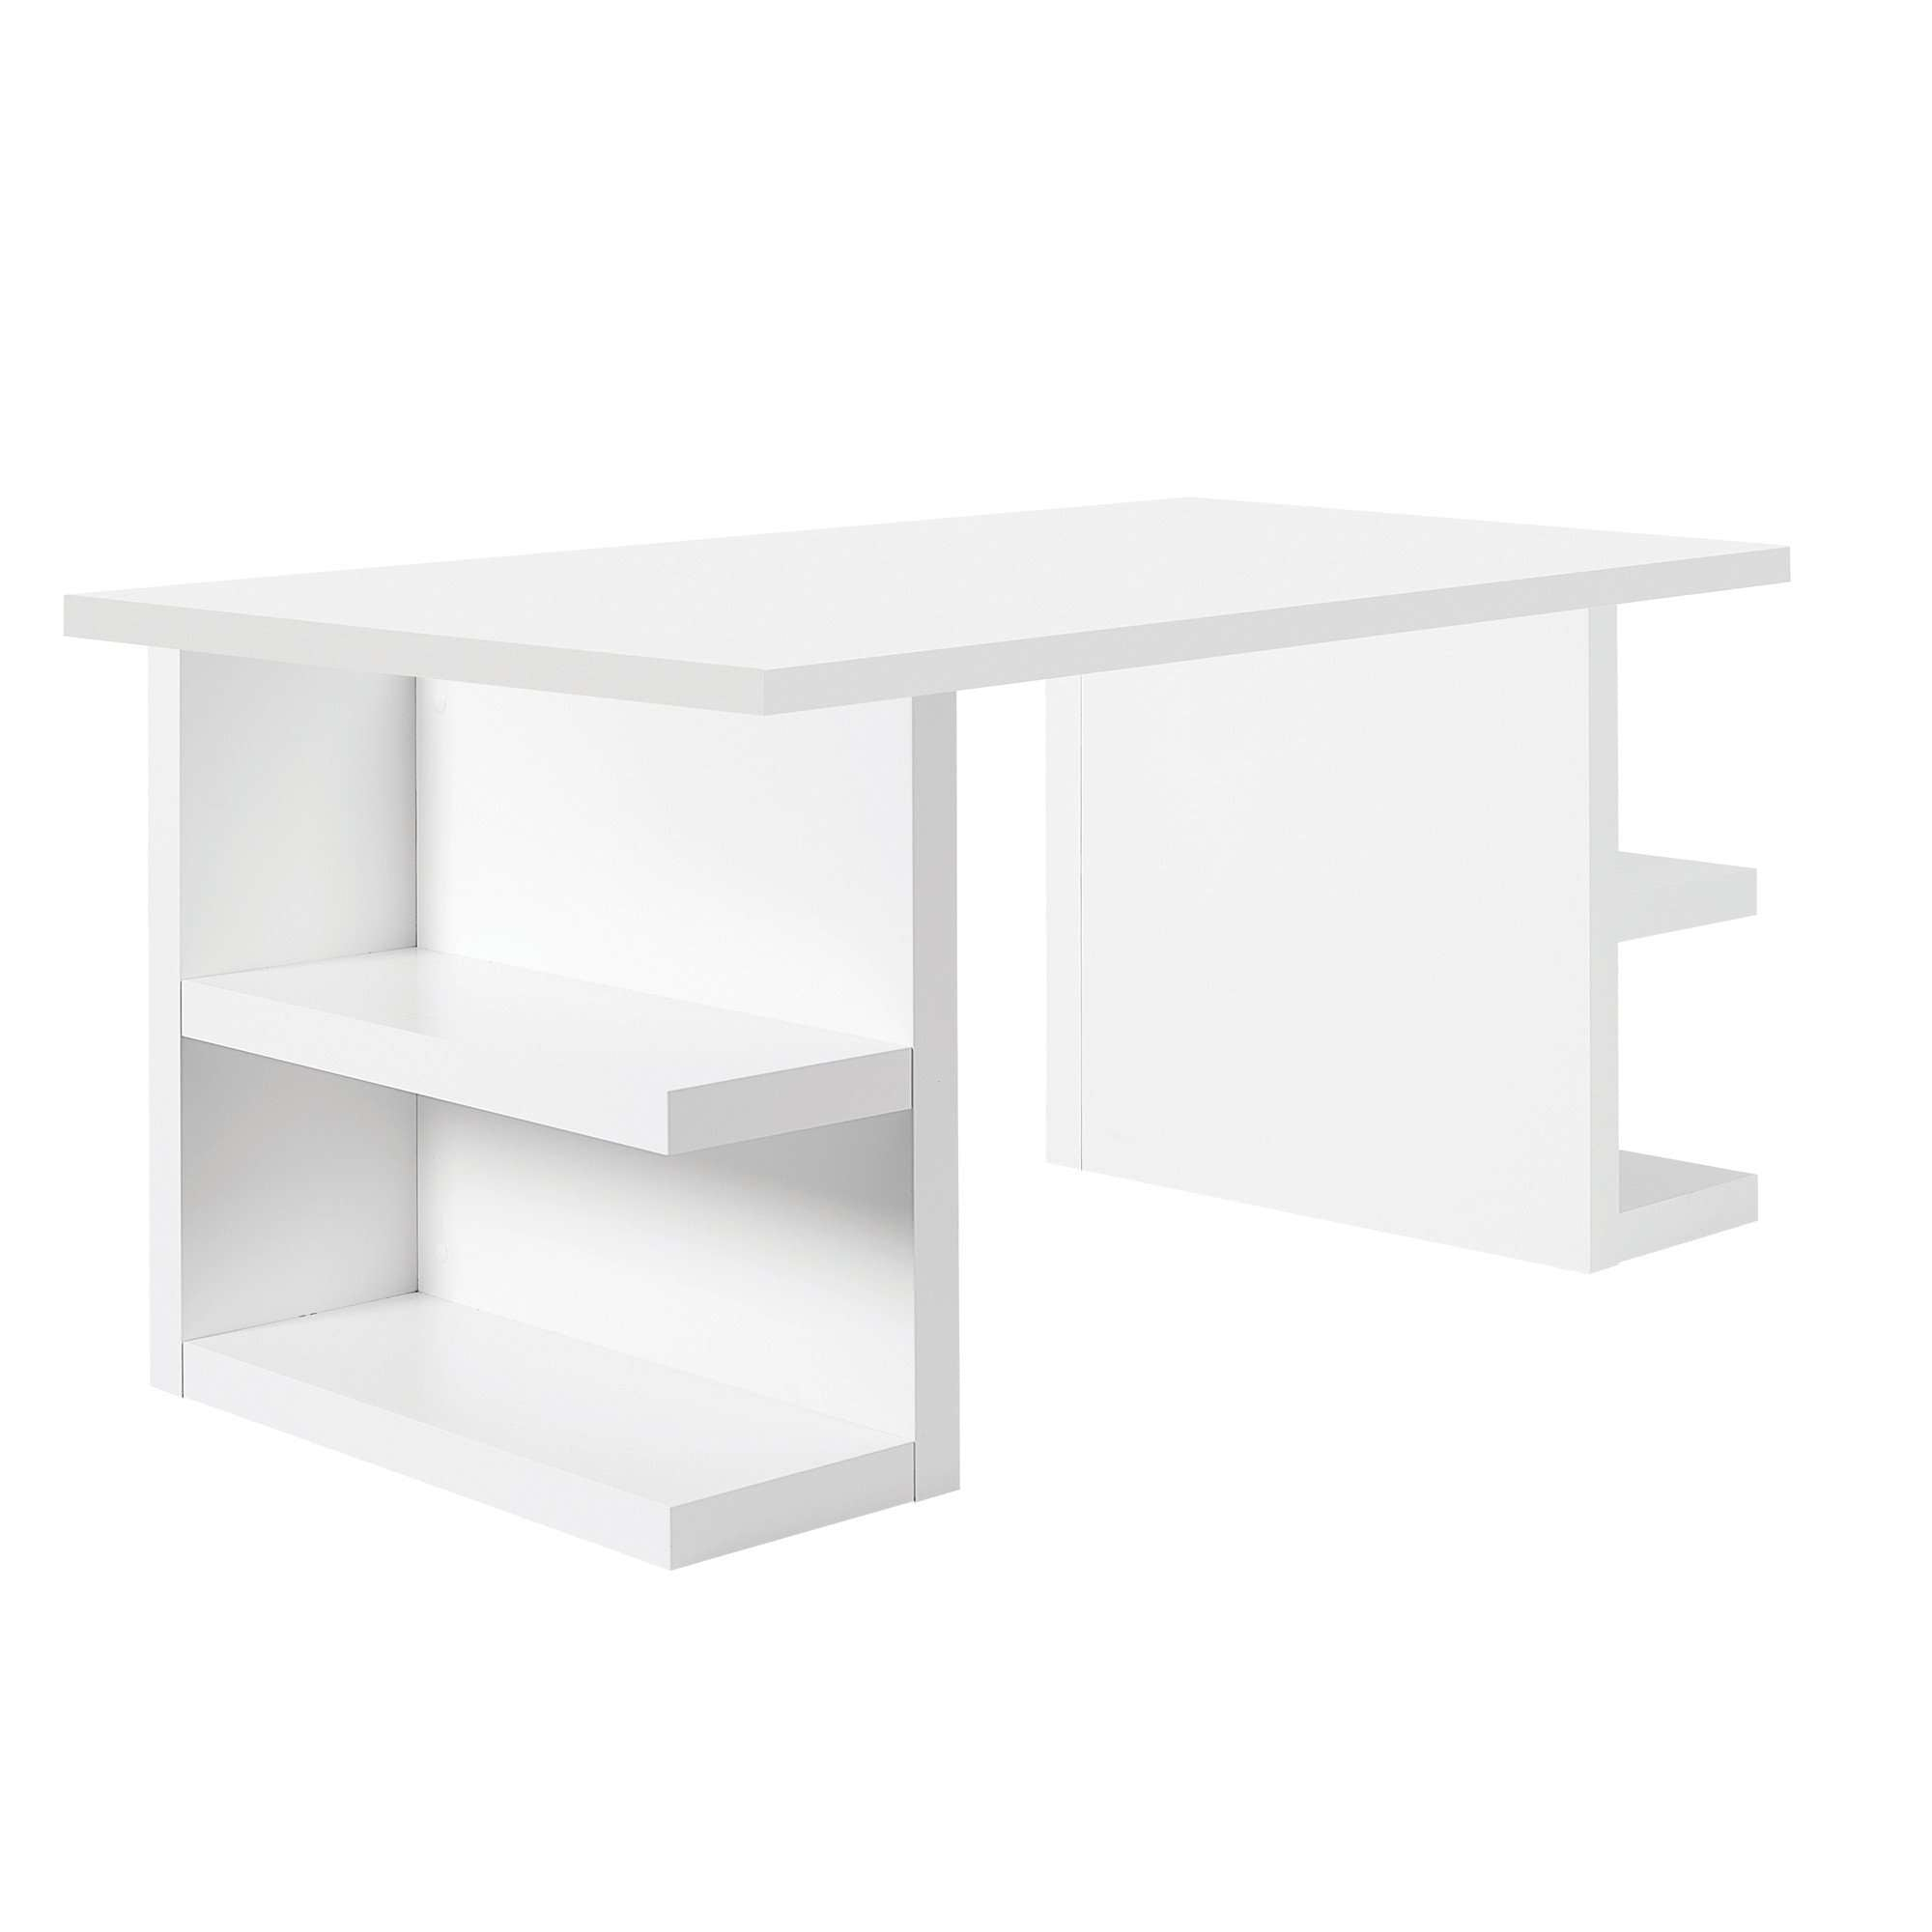 "Tema Home-Multi 71"" Table Top w/ Storage Legs 077040-MULTI71S-Dining Table-MODTEMPO"